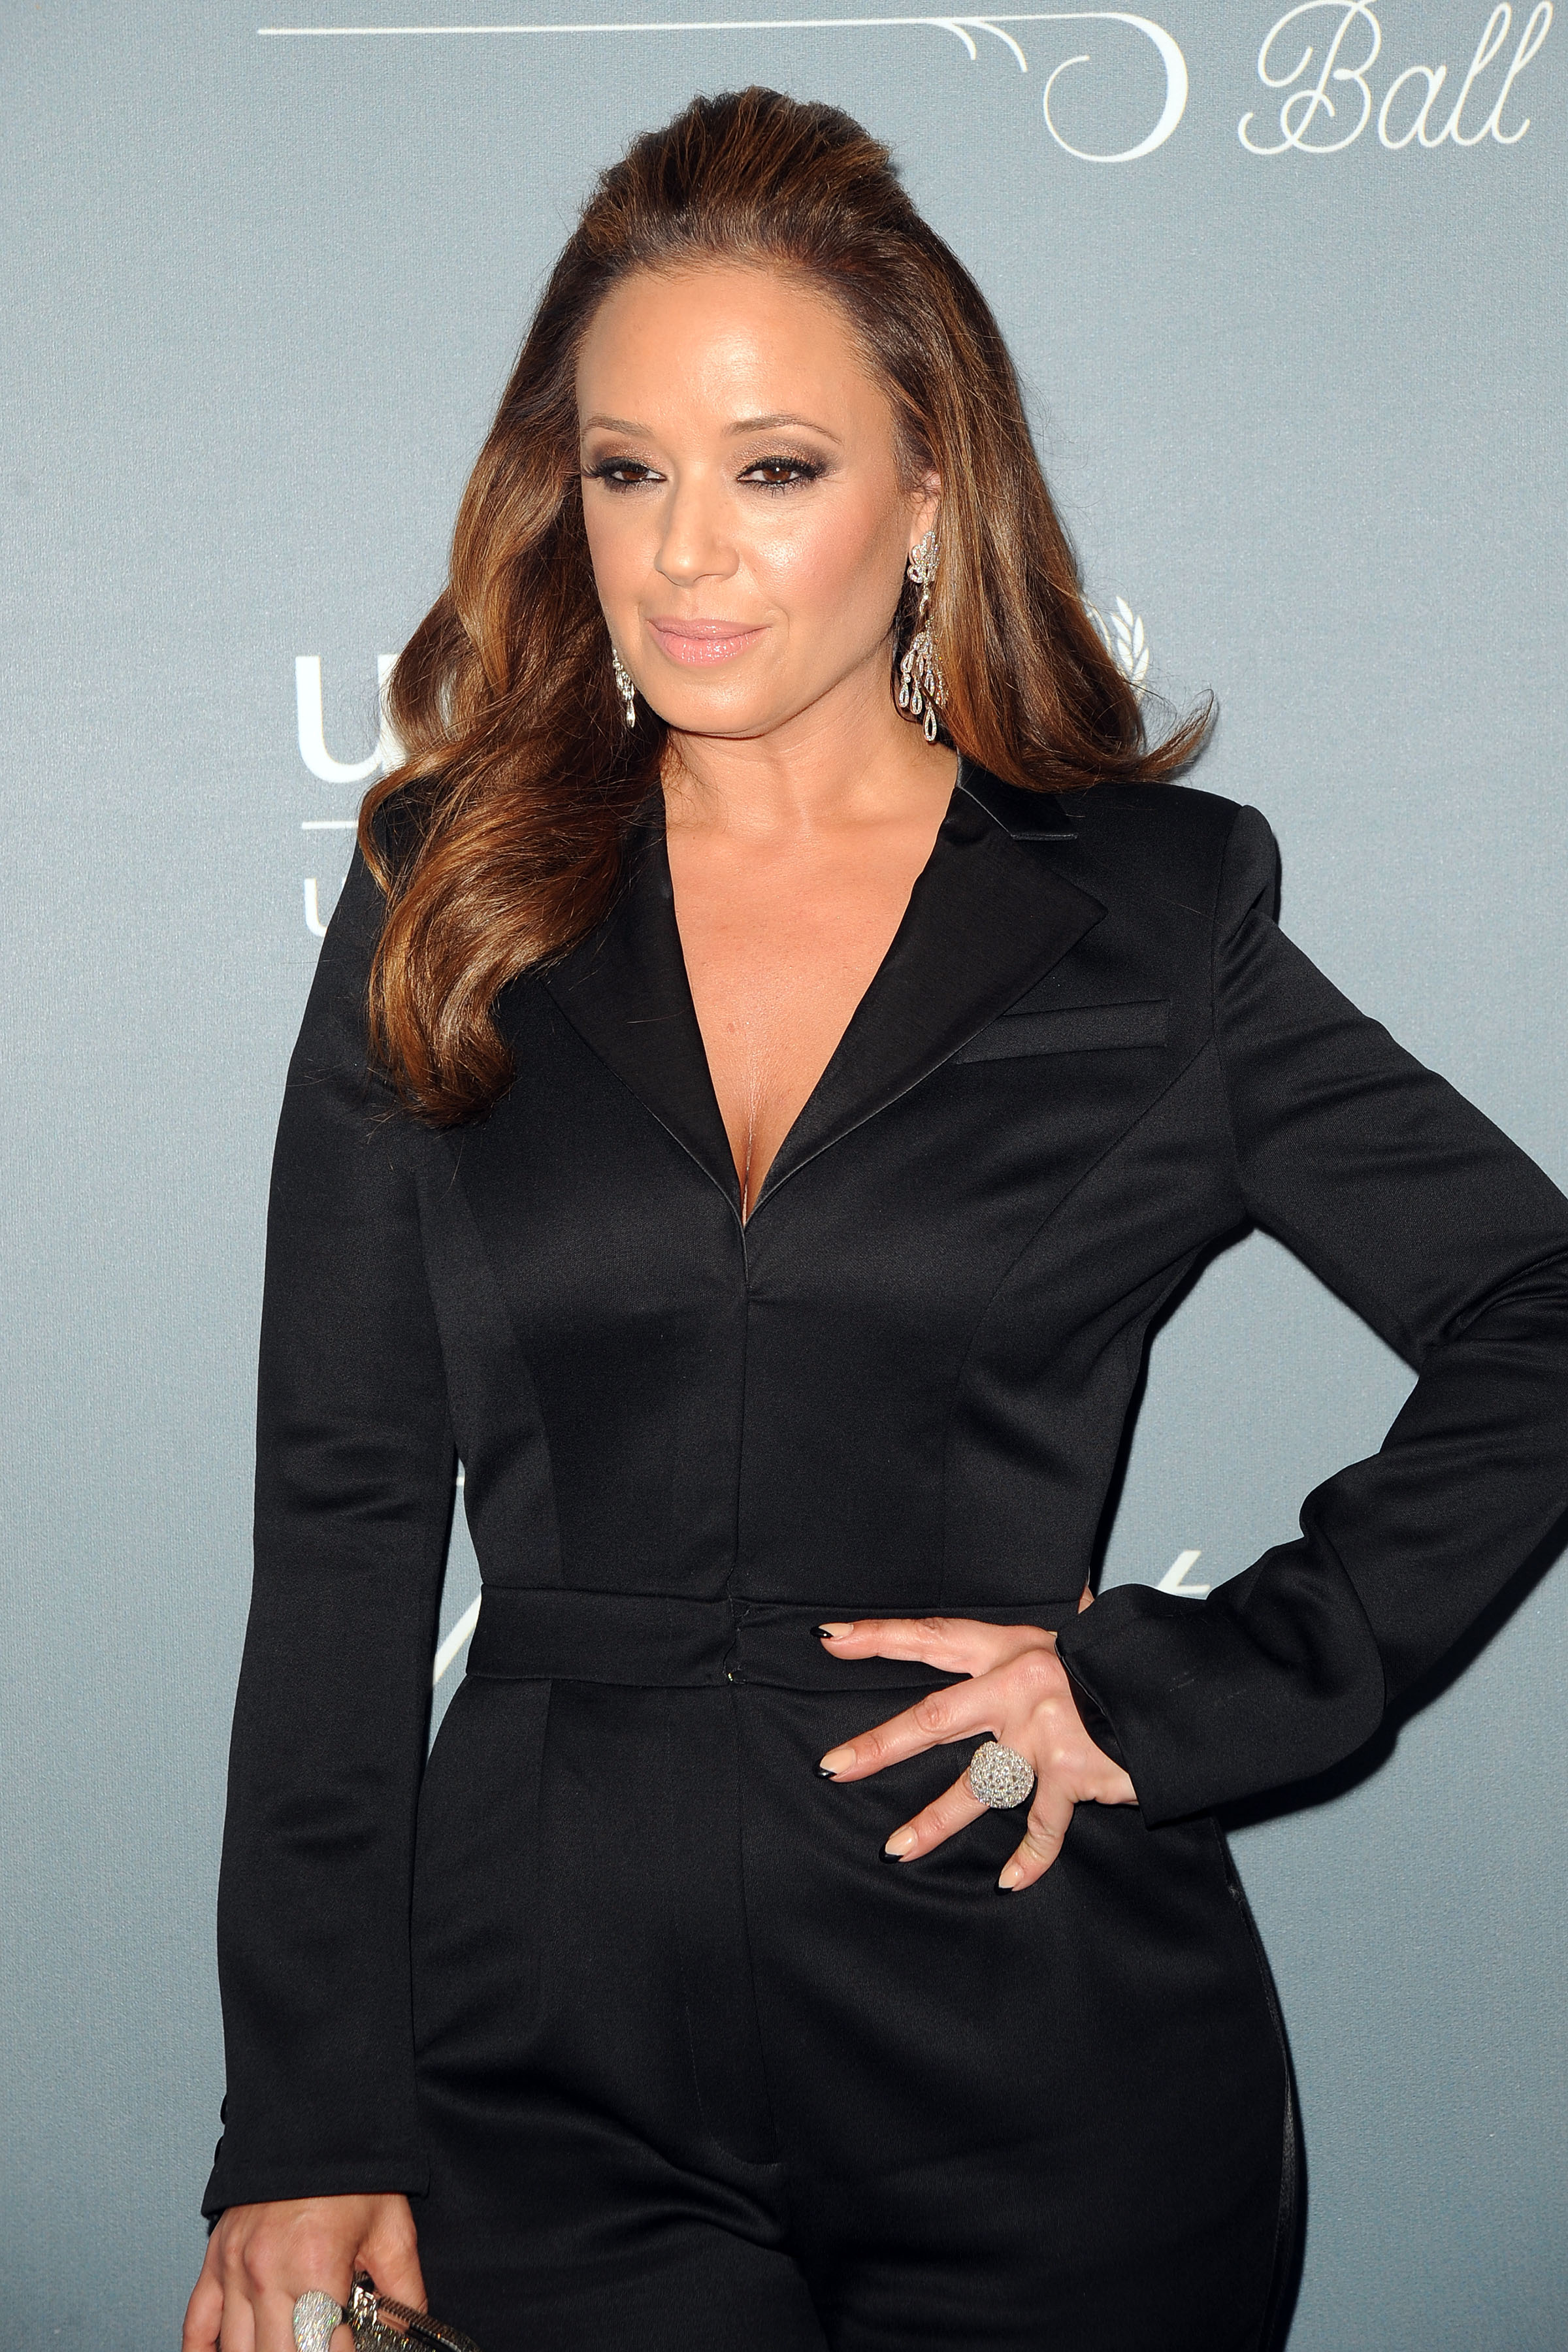 Actress Leah Remini attends the 2014 UNICEF Ball in Beverly Hils, Calif. on Jan. 14, 2014.